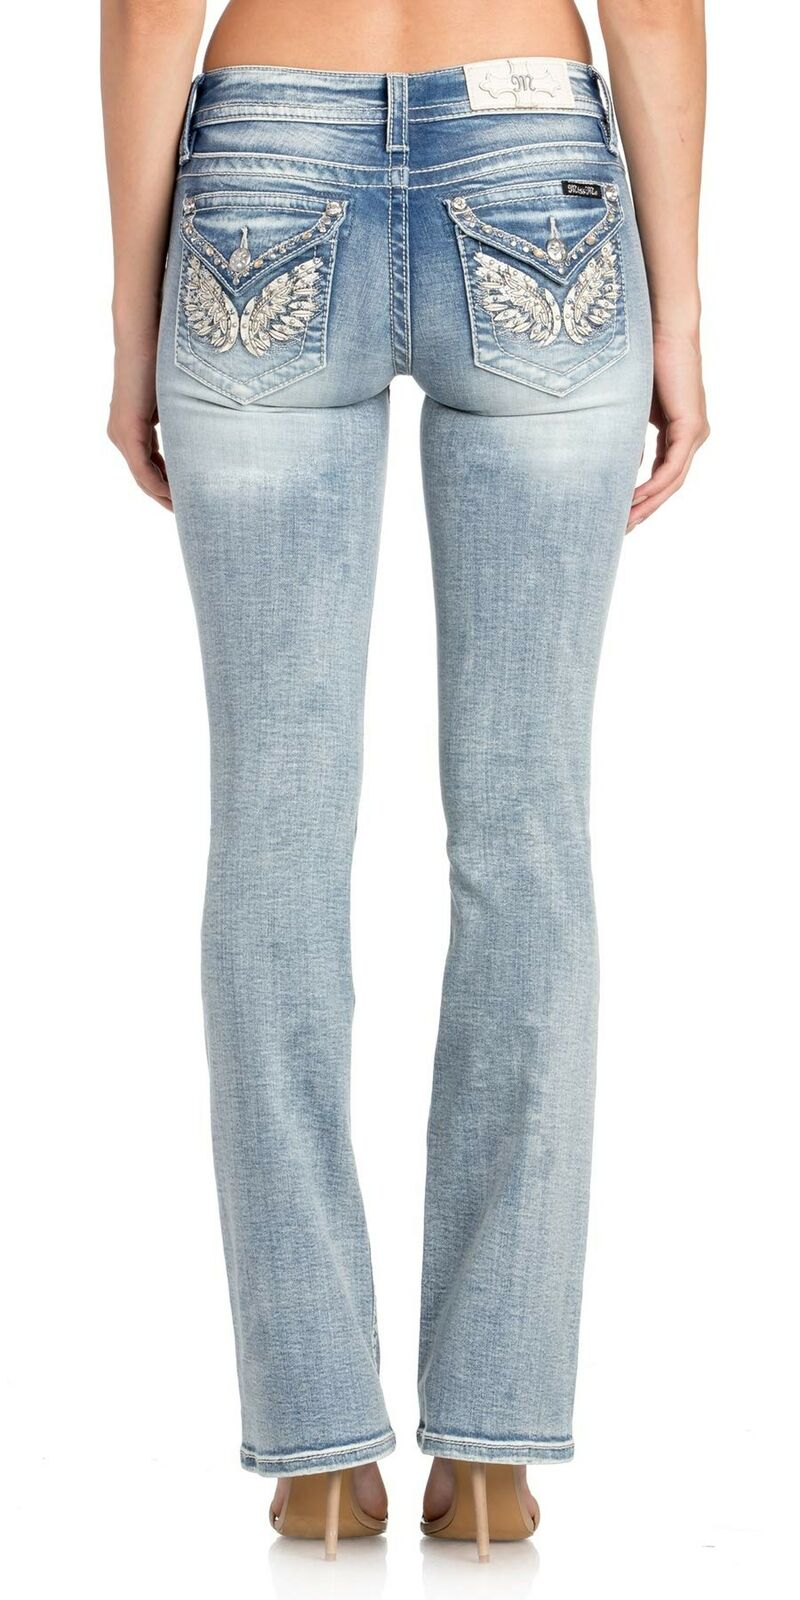 Miss Me Women's Mid-Rise Chloe Boot Cut Jeans, Light bluee 33